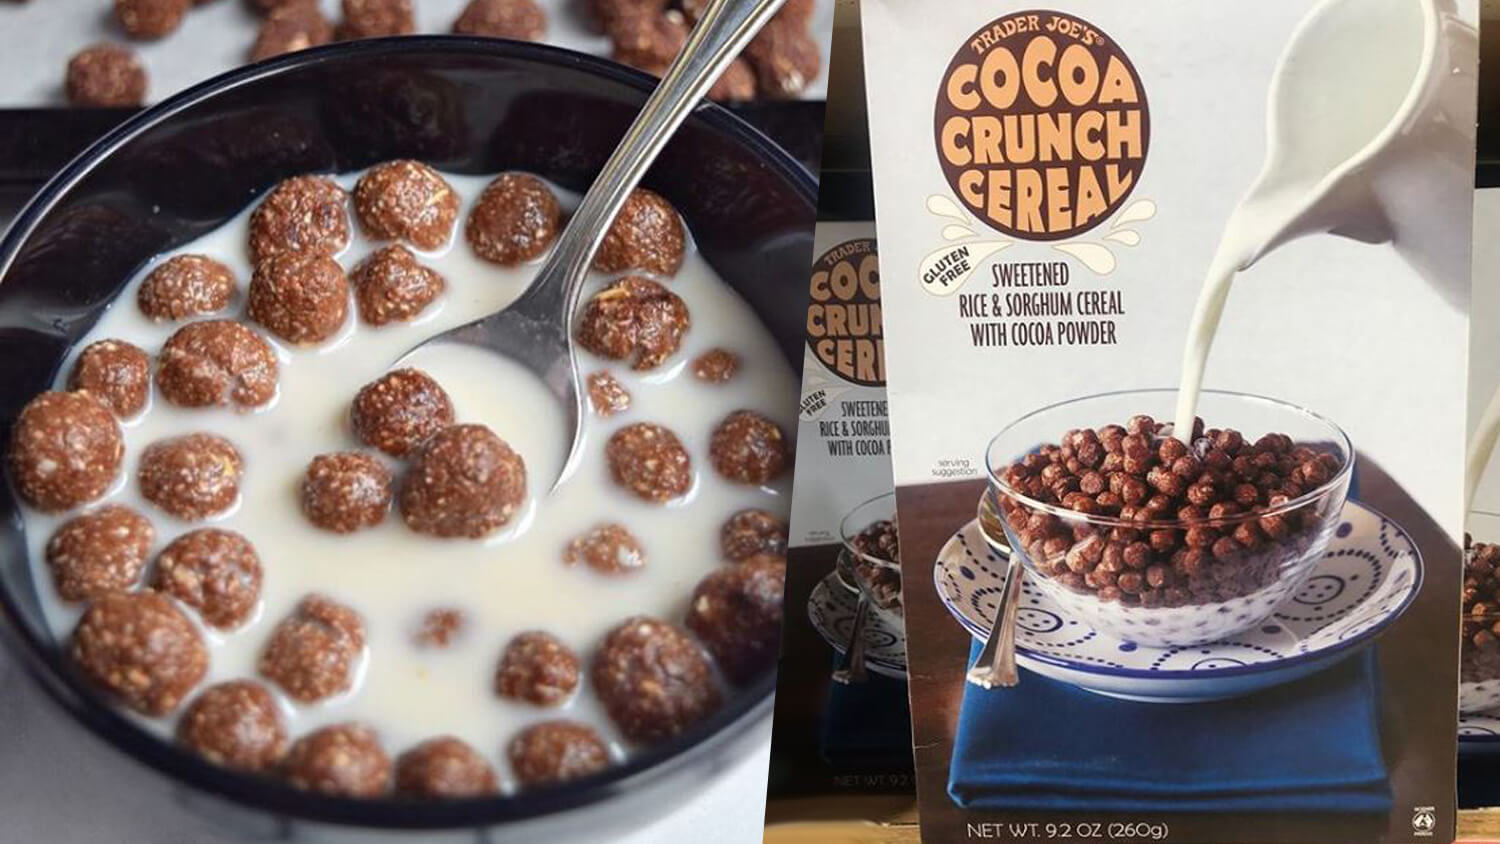 Trader Joe's Will Make You Cuckoo for Vegan Cocoa Puffs